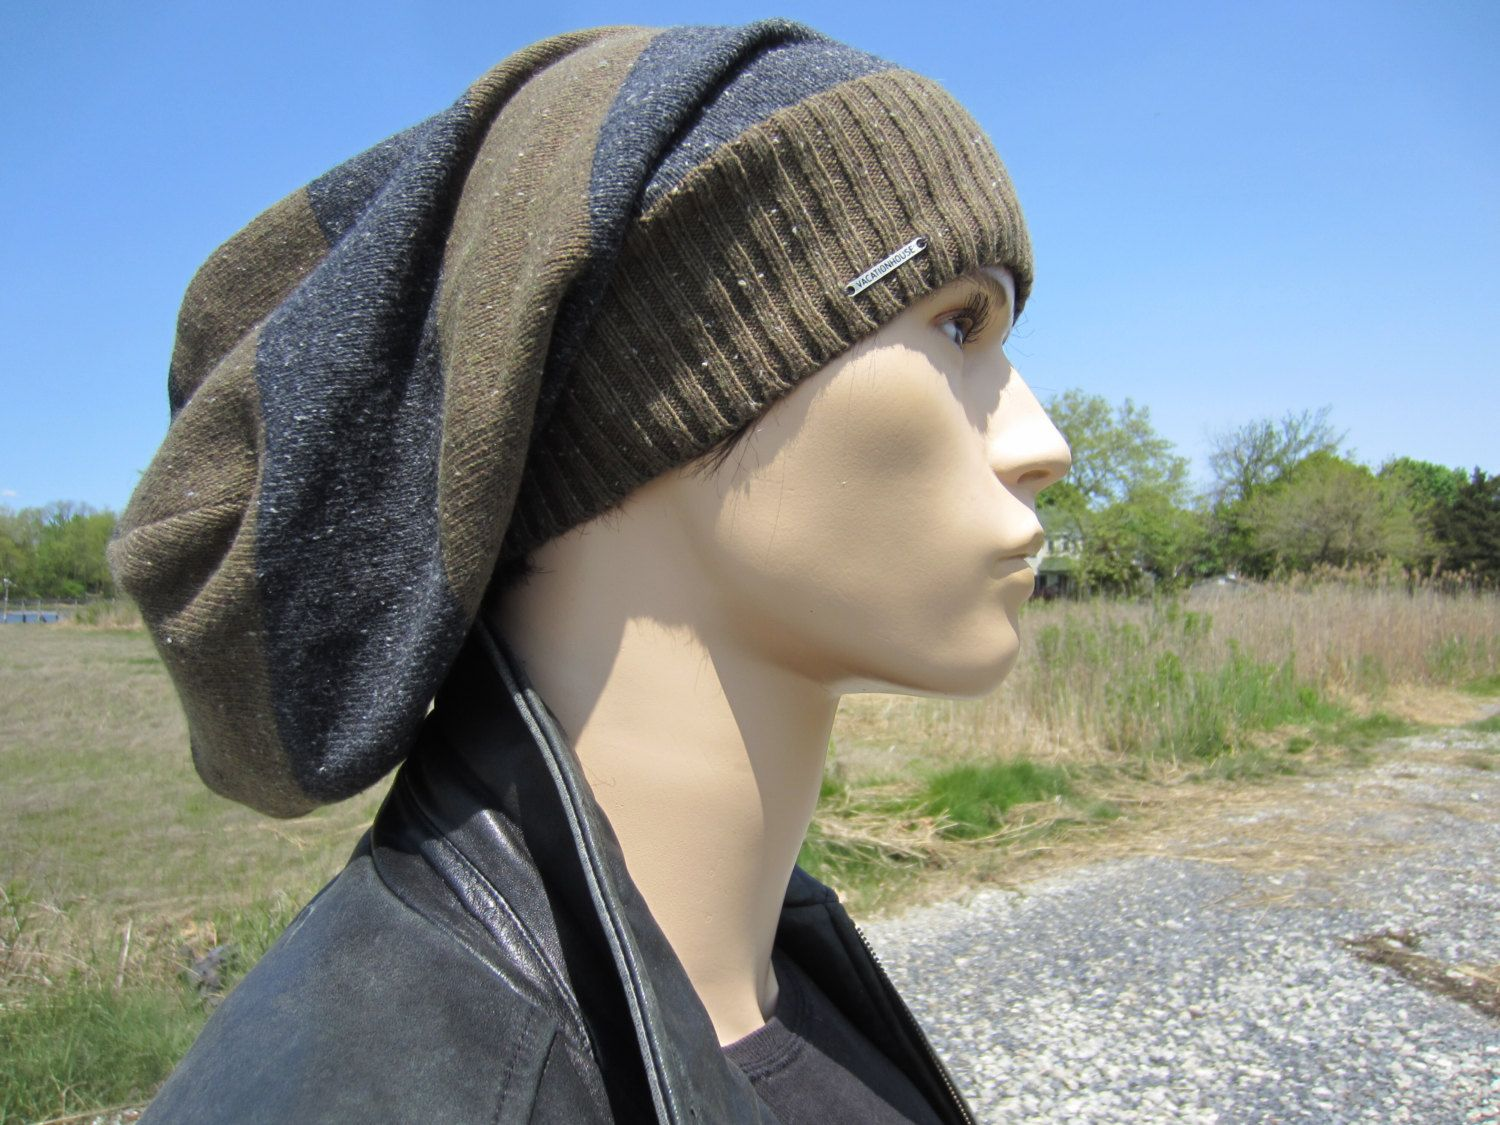 ccb4dd0add13be Extra Long Dreadlock Tam Hat Dread Tams for Men Slouchy Beanies Brown &  Light Gray Striped Cotton Knit A1619 by Vacationhouse on Etsy